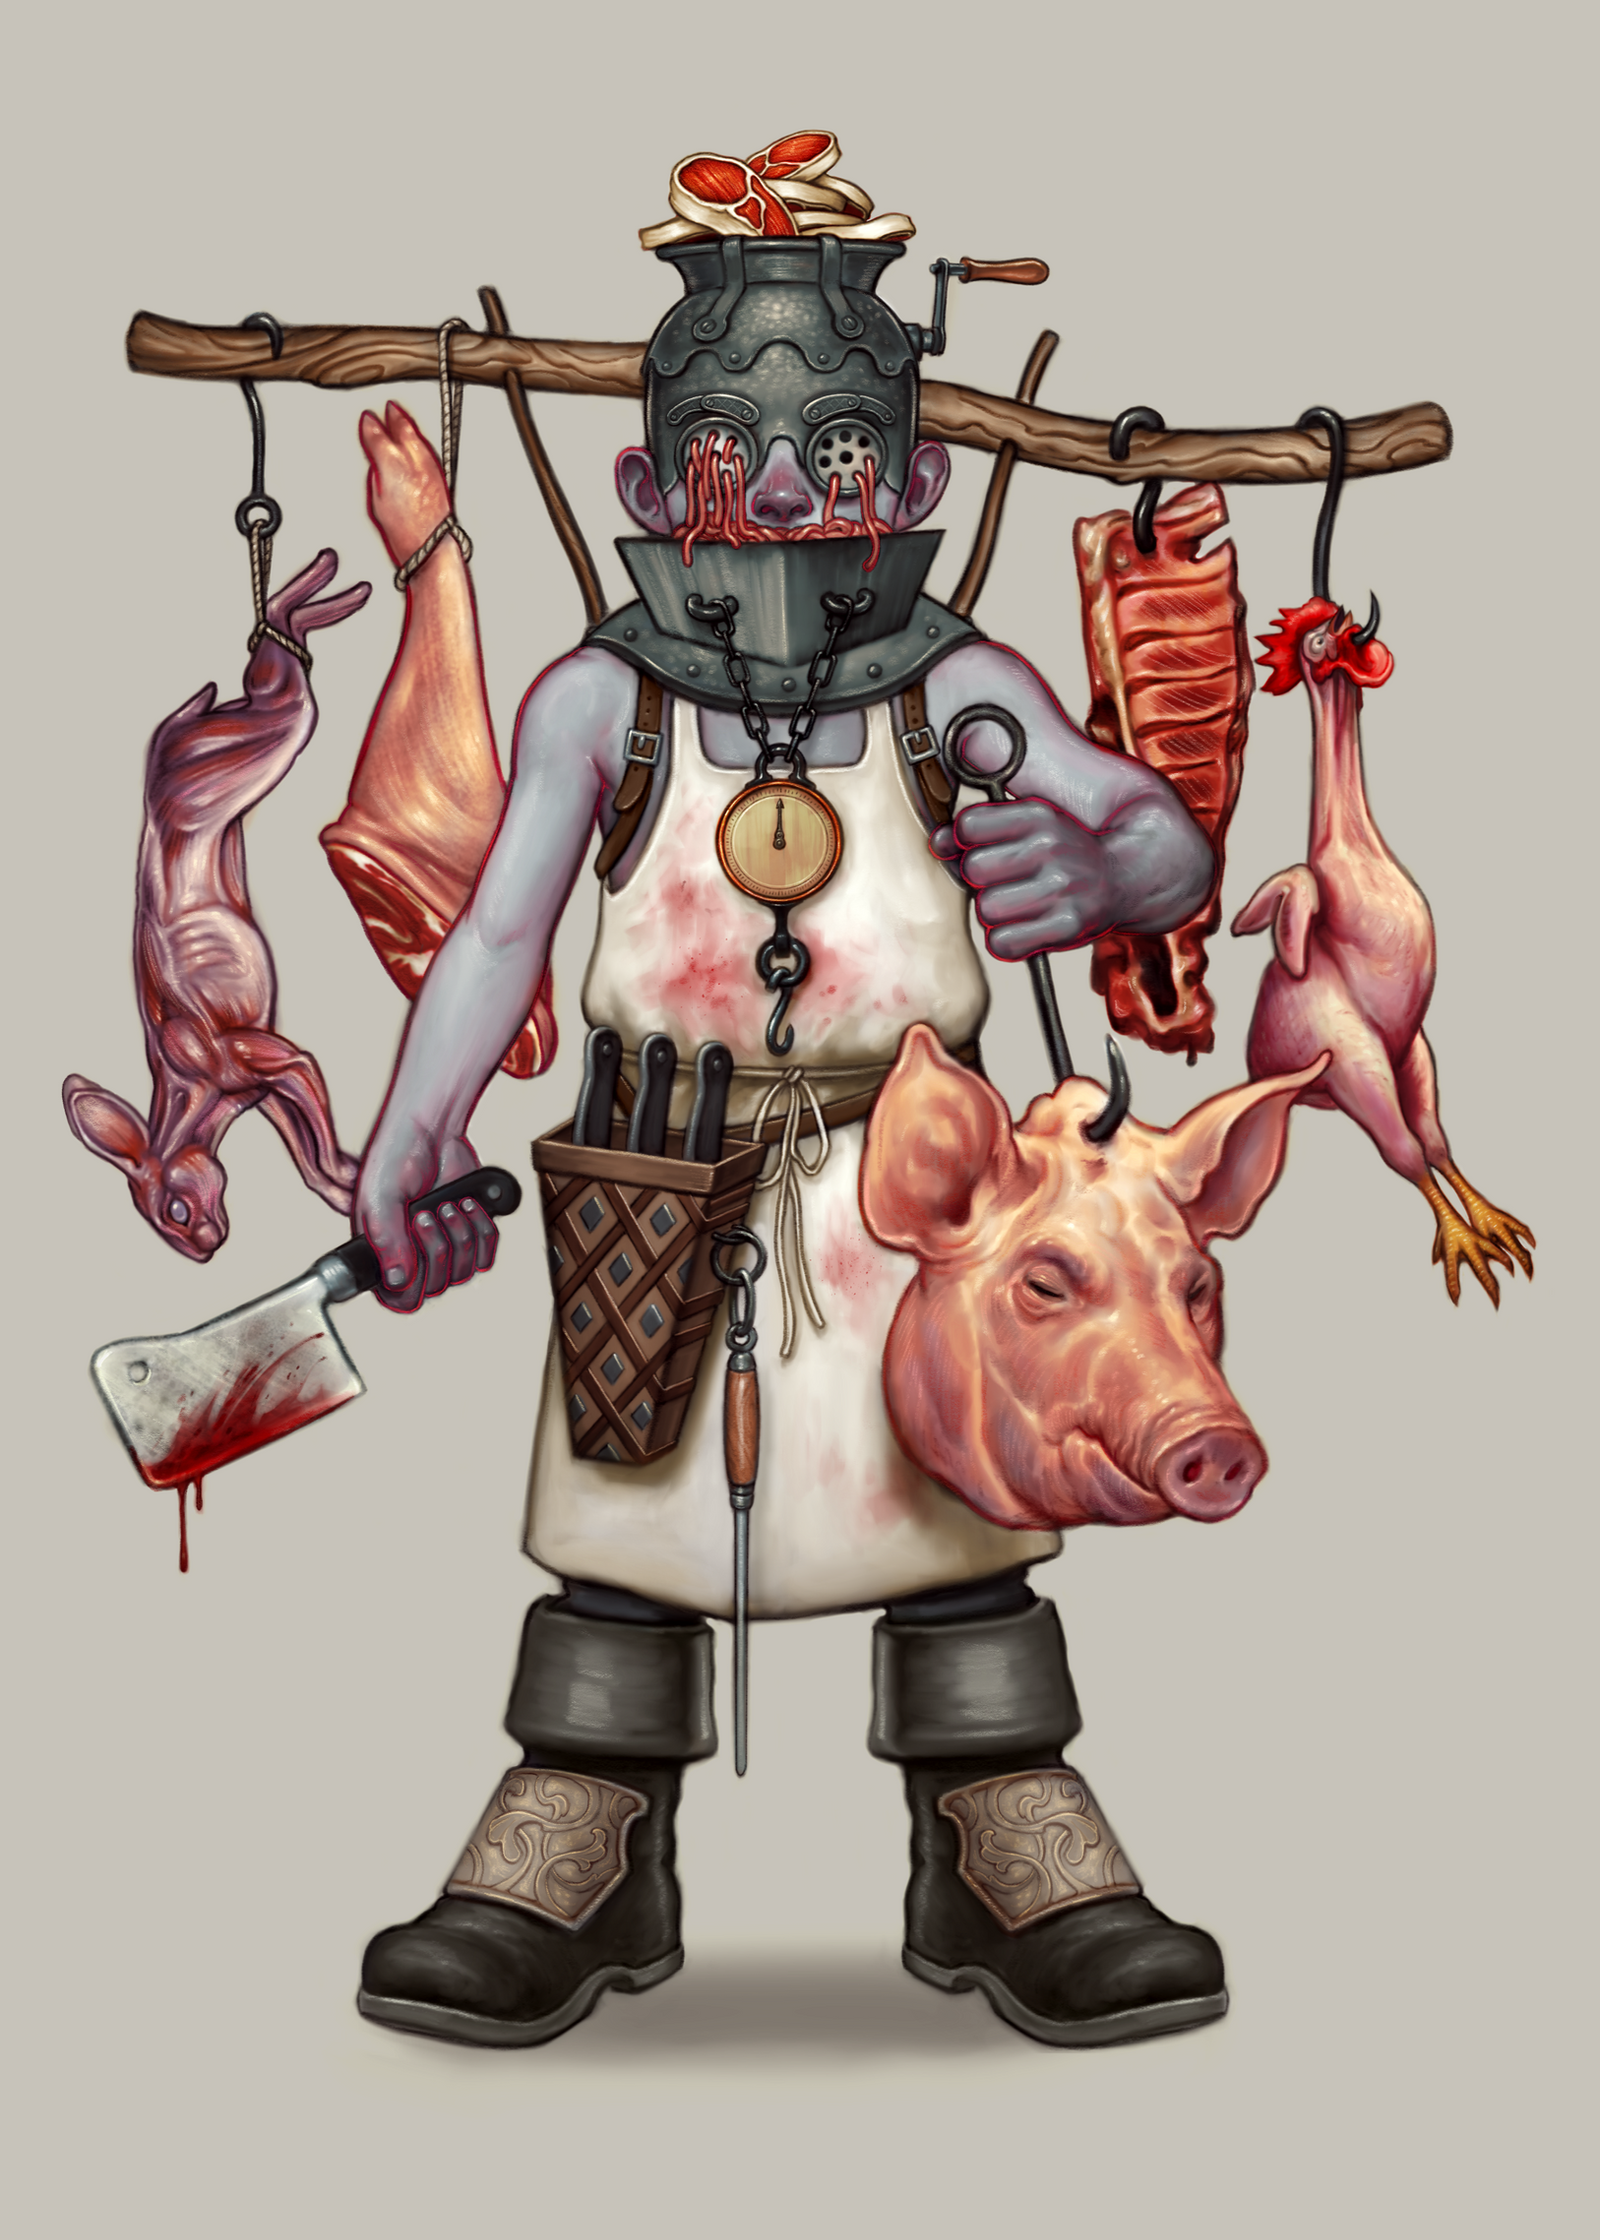 The Butcher by DanielKarlsson